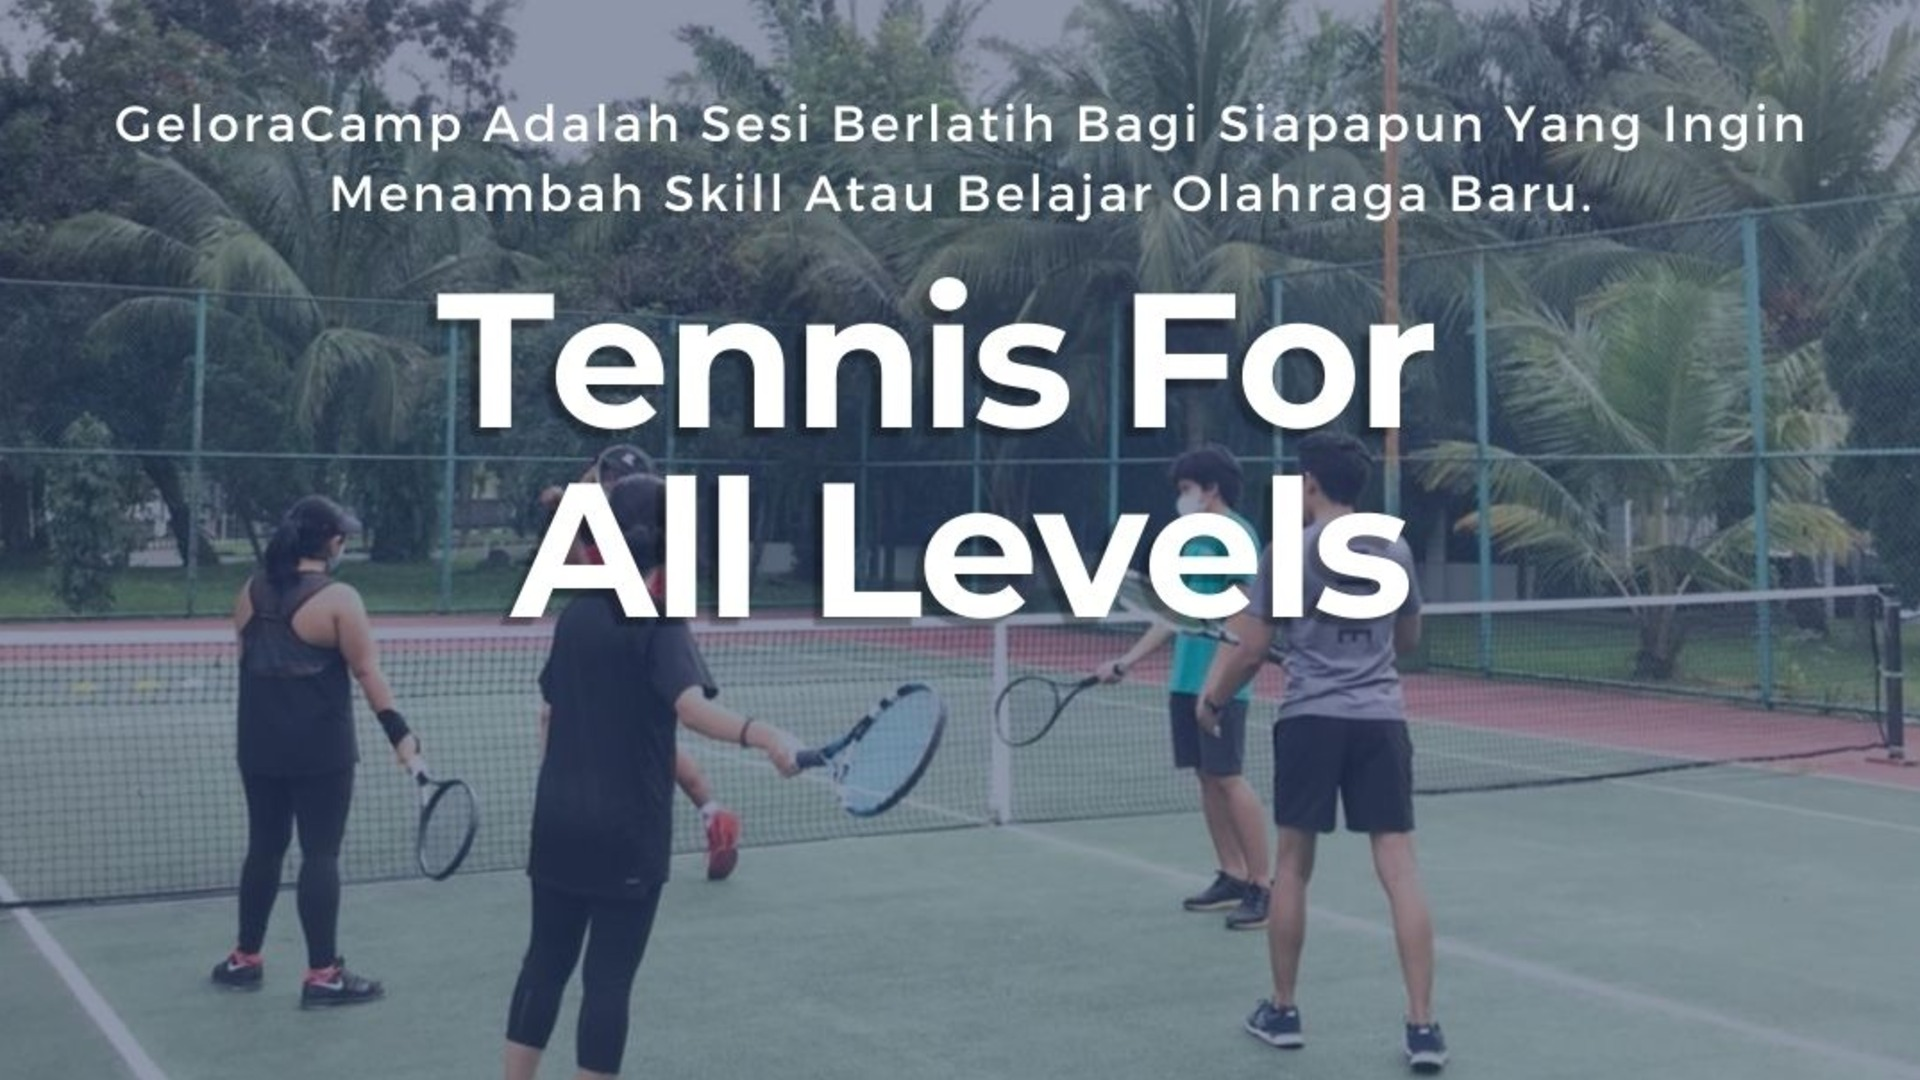 Tenis For All Levels